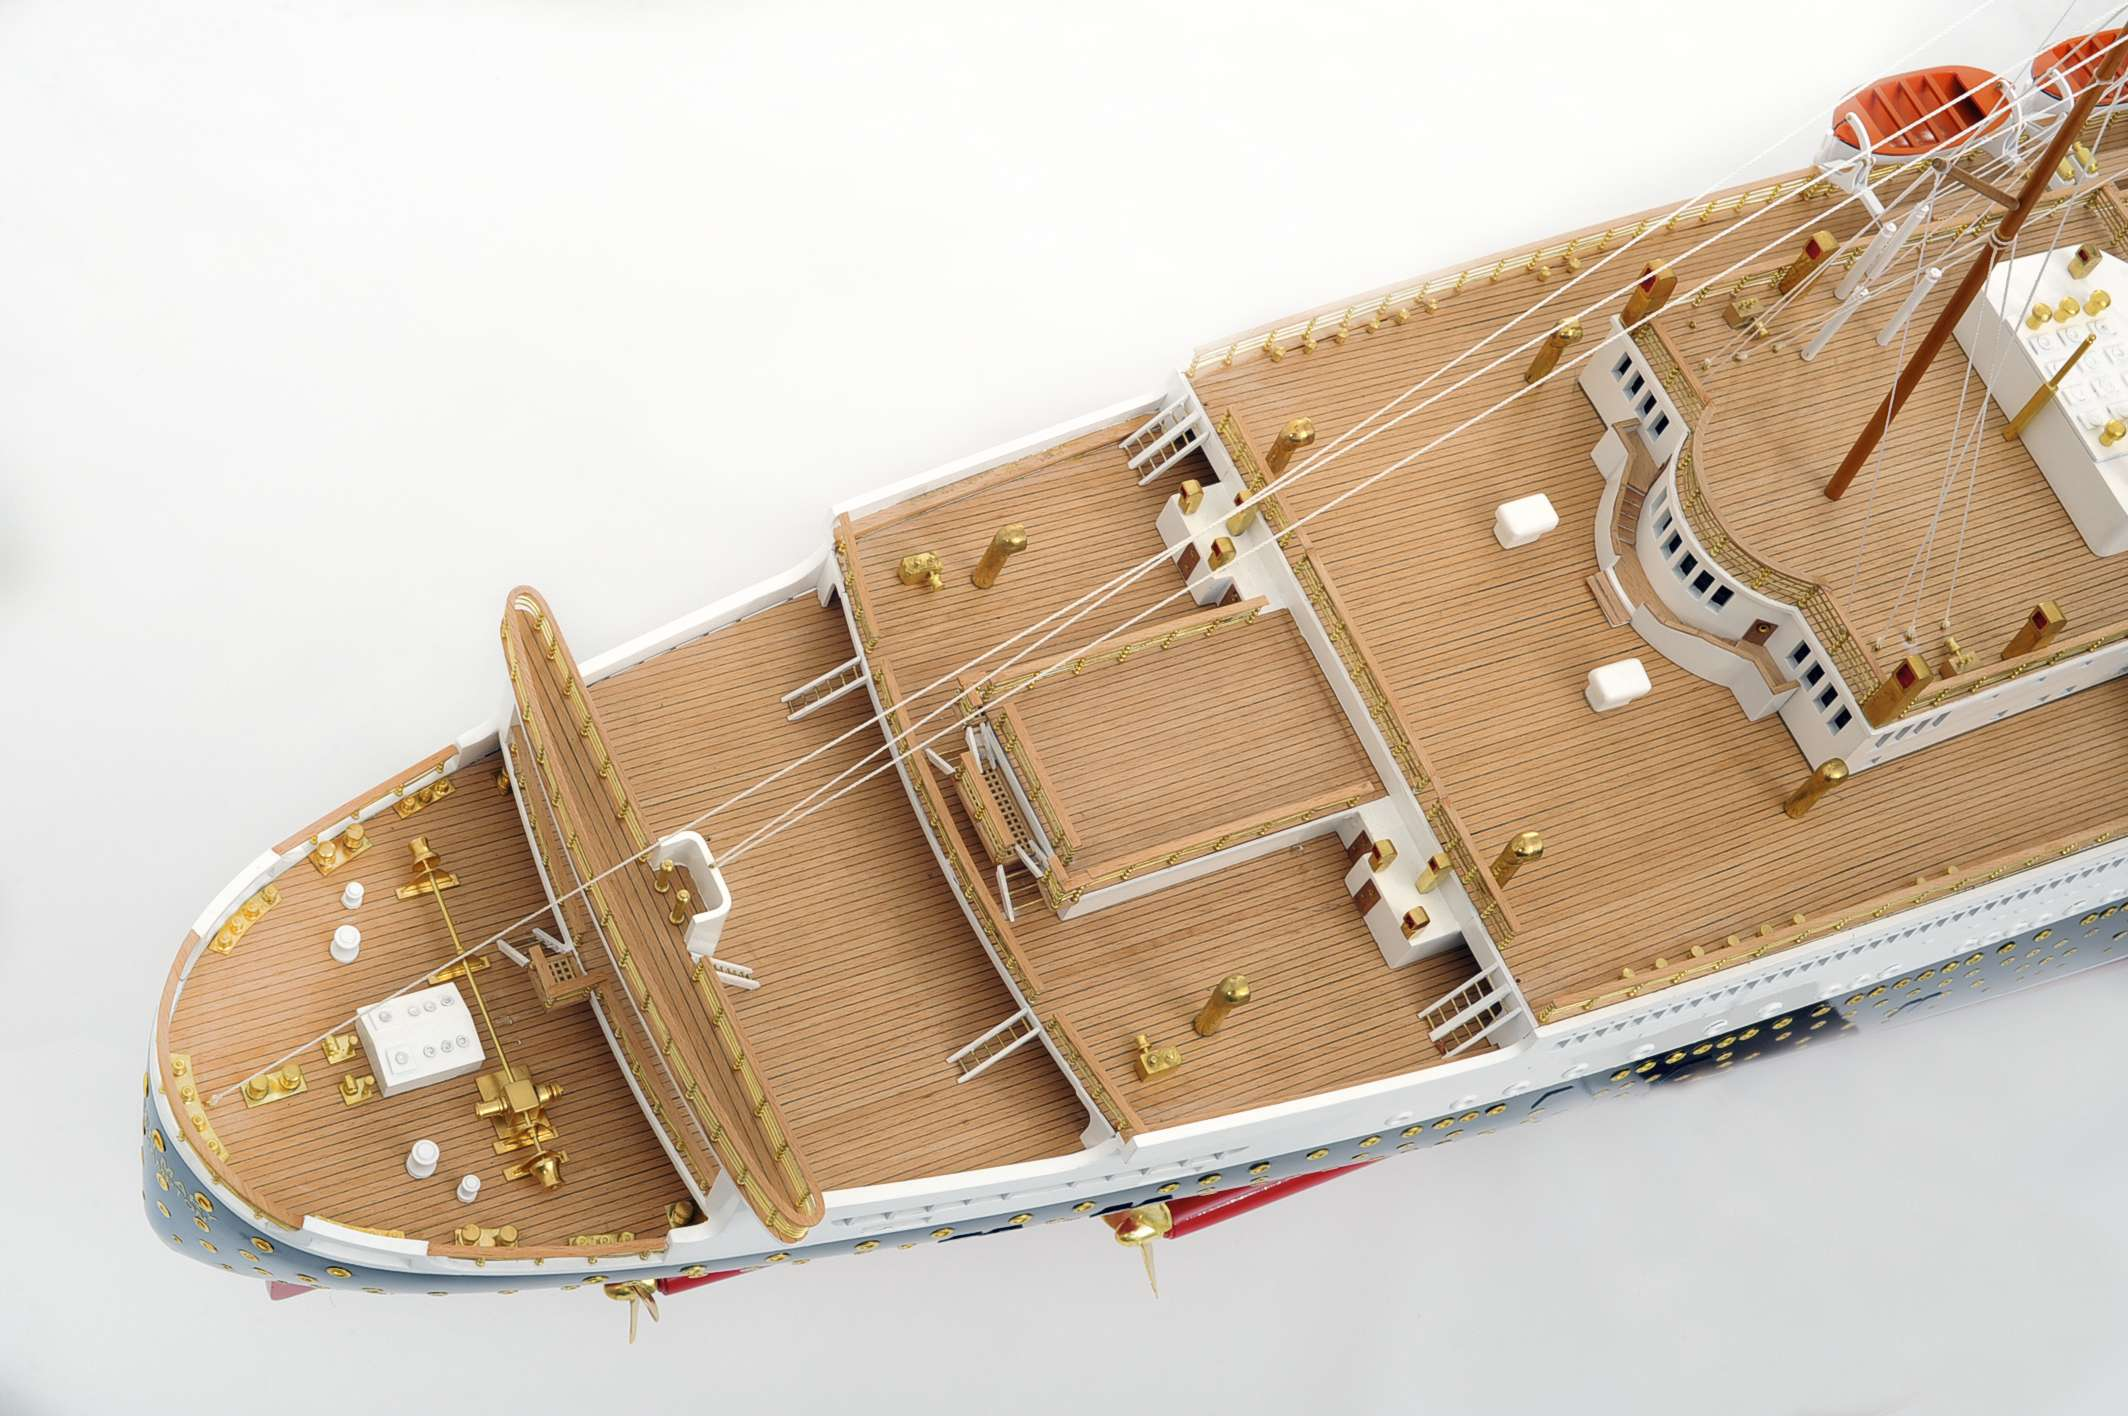 1484-4982-RMS-Queen-Mary-Model